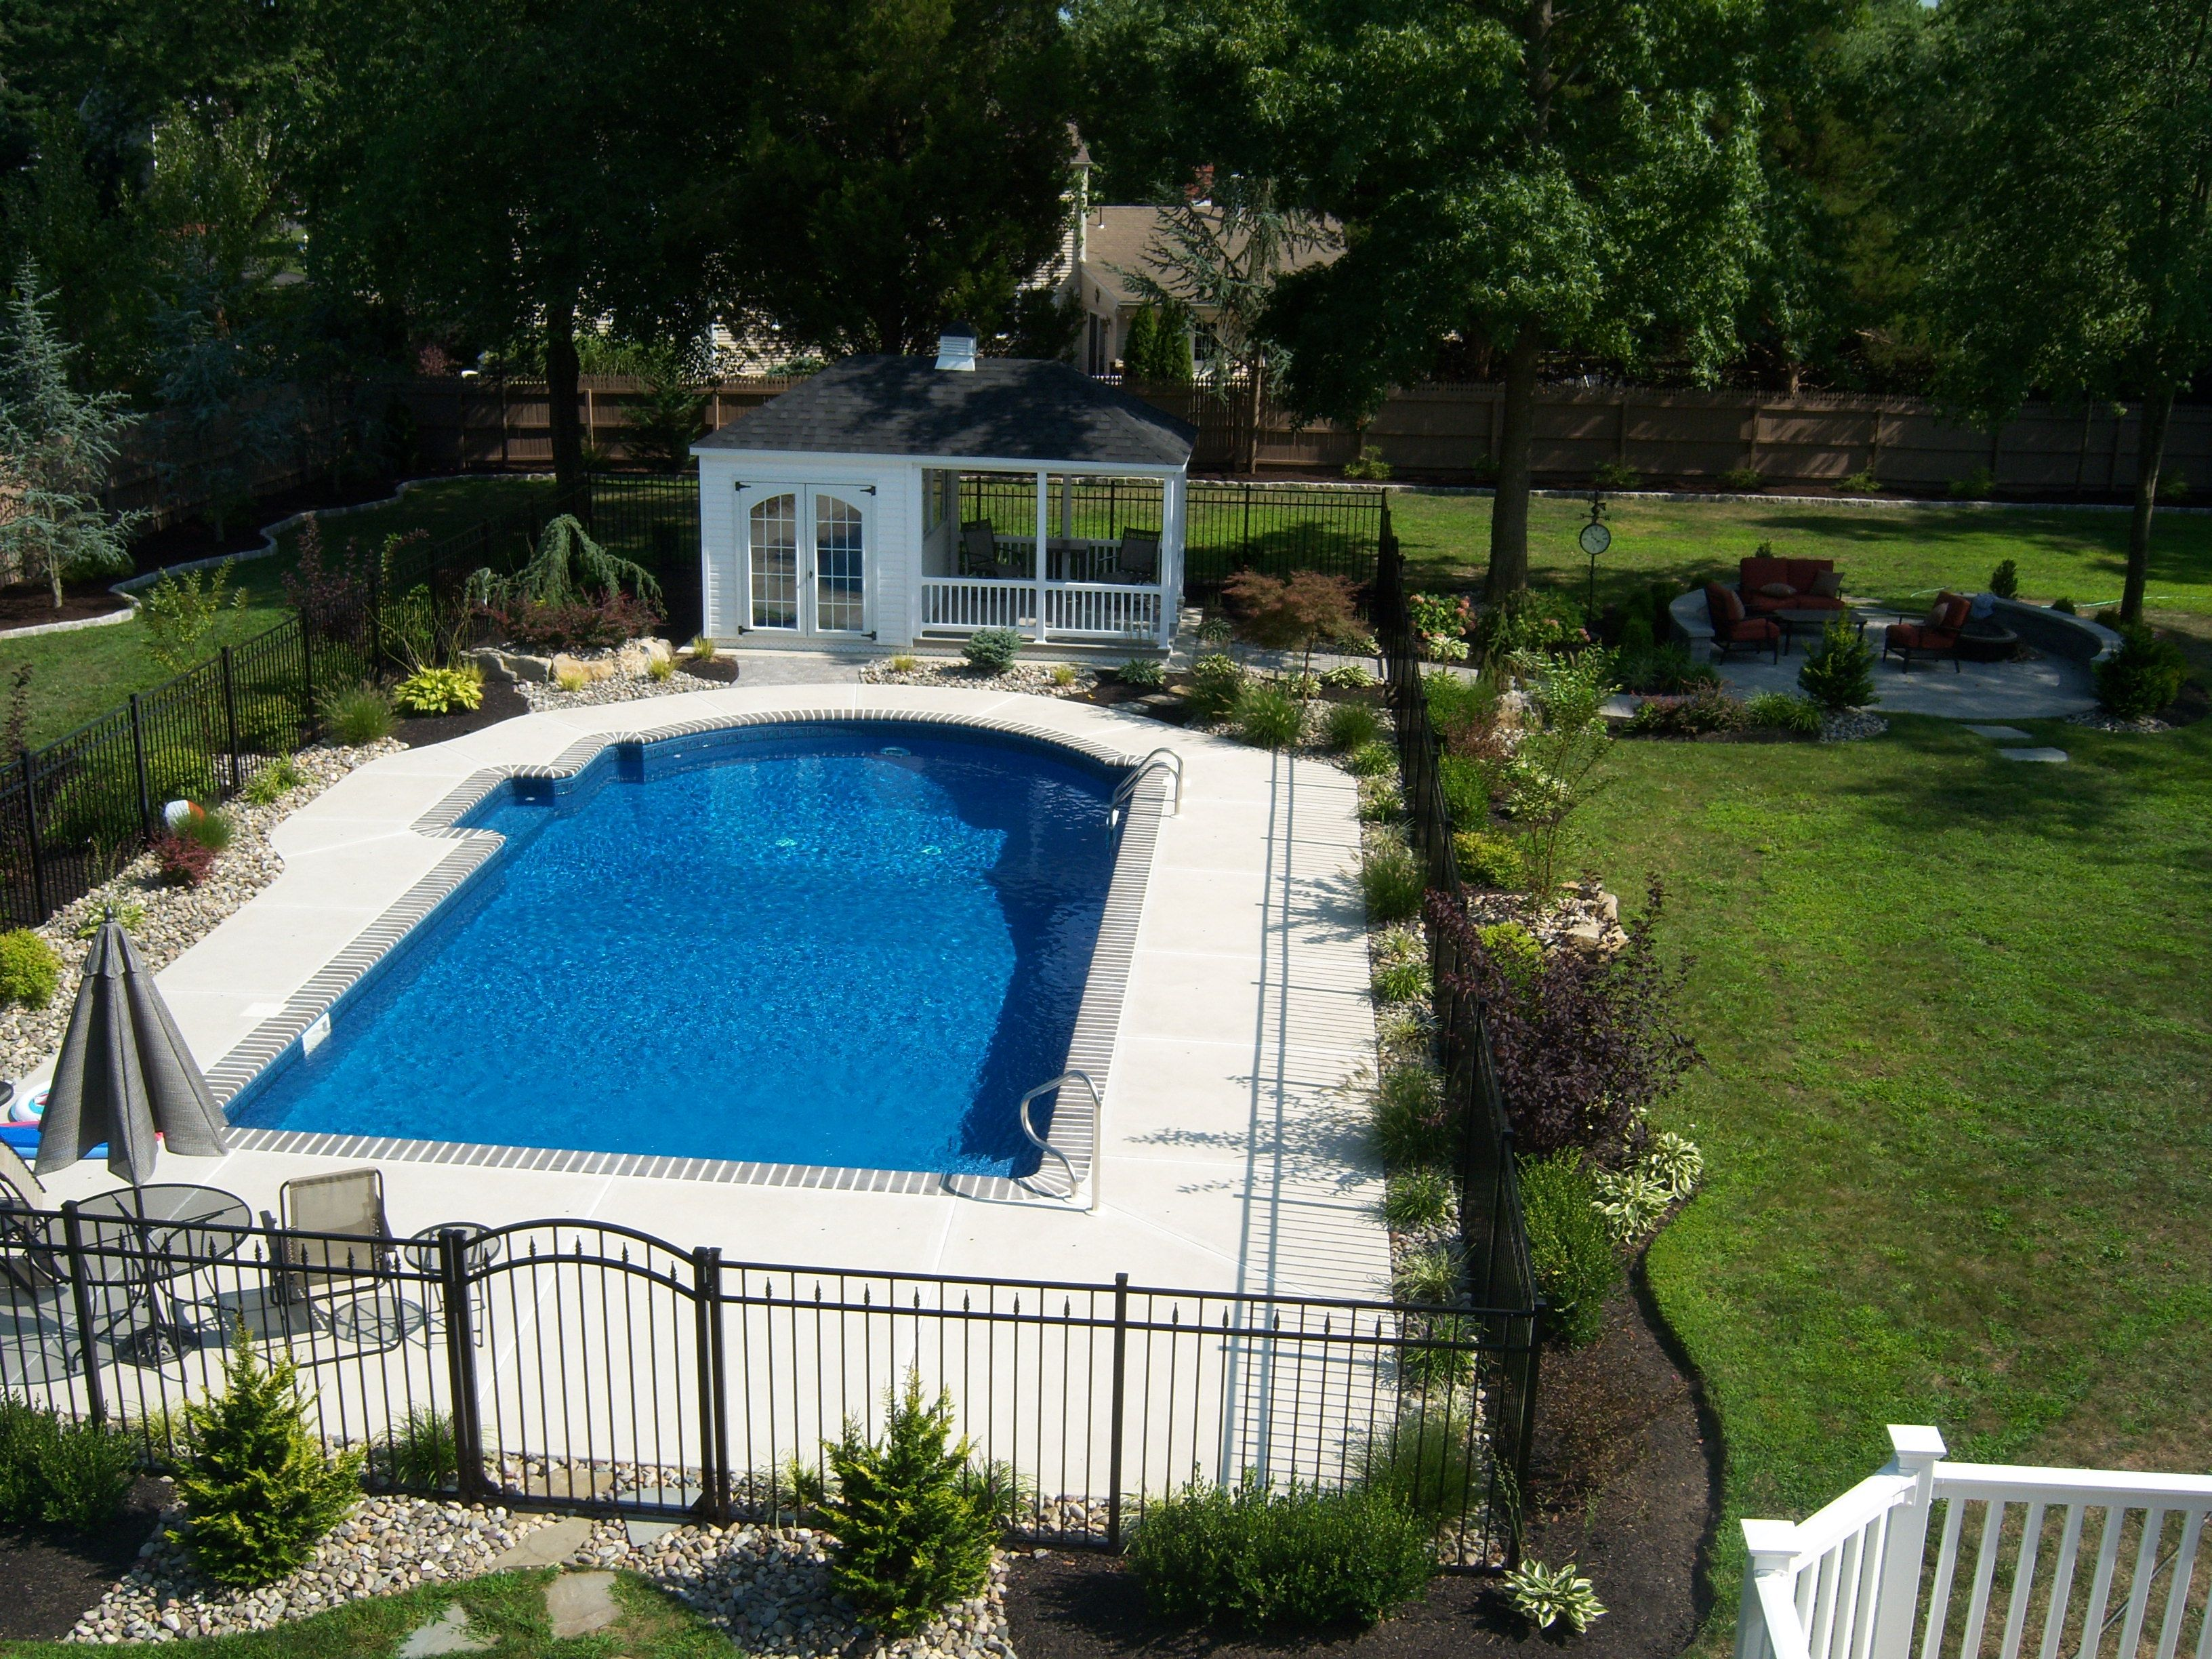 inground pool design ideas - Inground Pool Designs Ideas